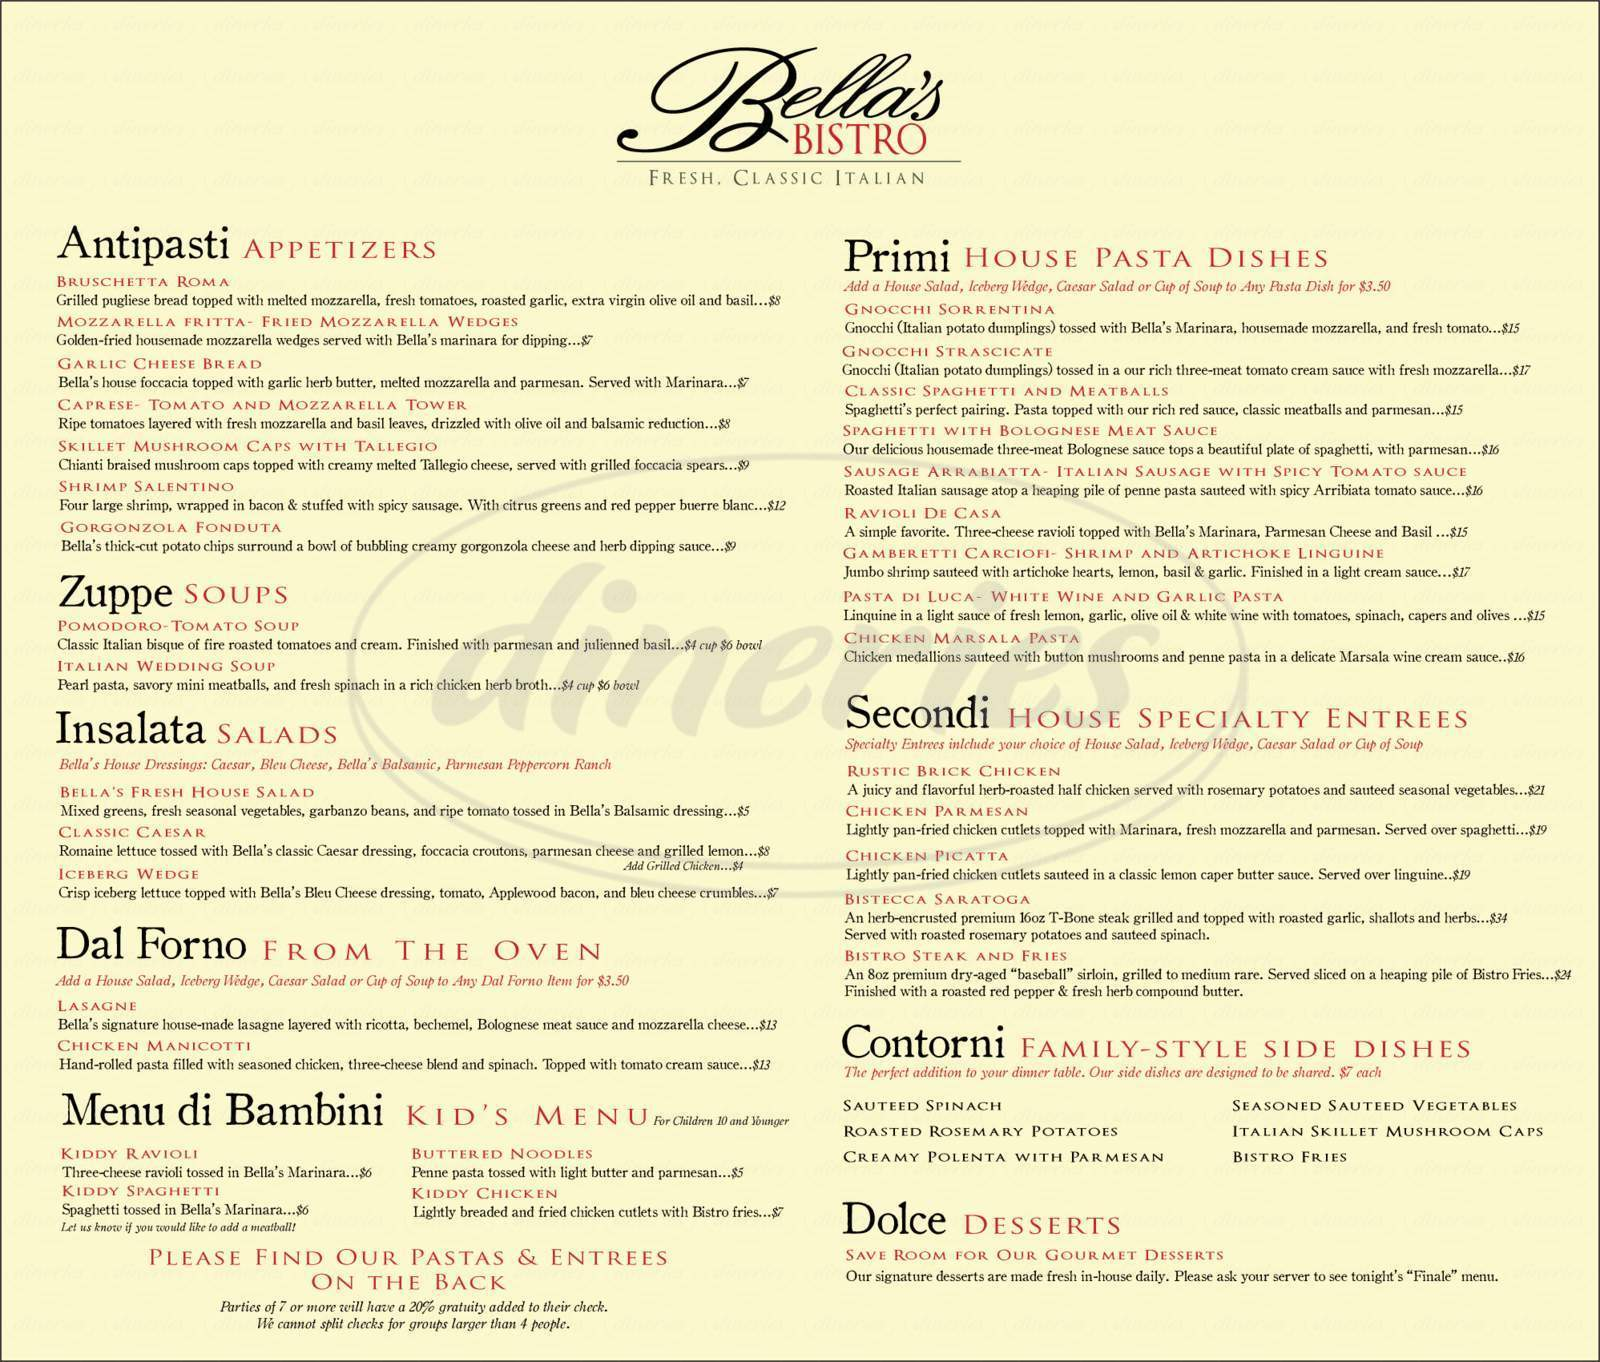 menu for Bellas Bistro